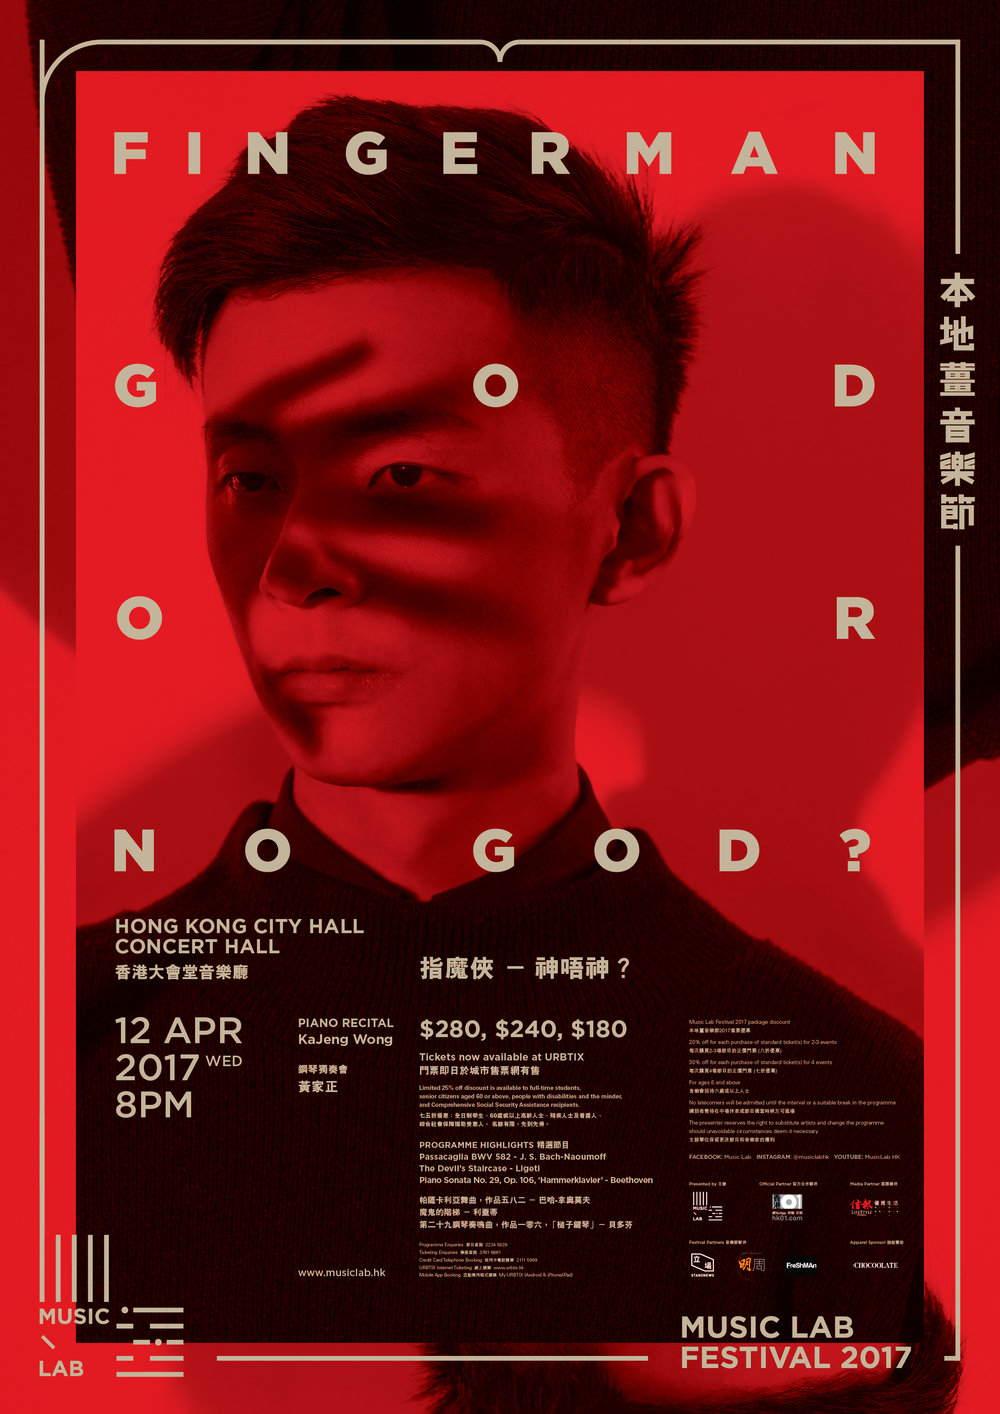 Fingerman - God or No God?  - The debate of God has existed for thousands of years. There are questions that are universal and eternal. How did we get here? Do we have a purpose in it at all? Is there a God? Is God dead? Fingerman God or No God uses music to explore our relationship with our universe.Music in this concert is not merely an appreciation of high art, but an experiential experience on interruption of silence. The second edition of Fingerman brings our audience to a journey of bewilderment and awe.Click here for the concert trailer